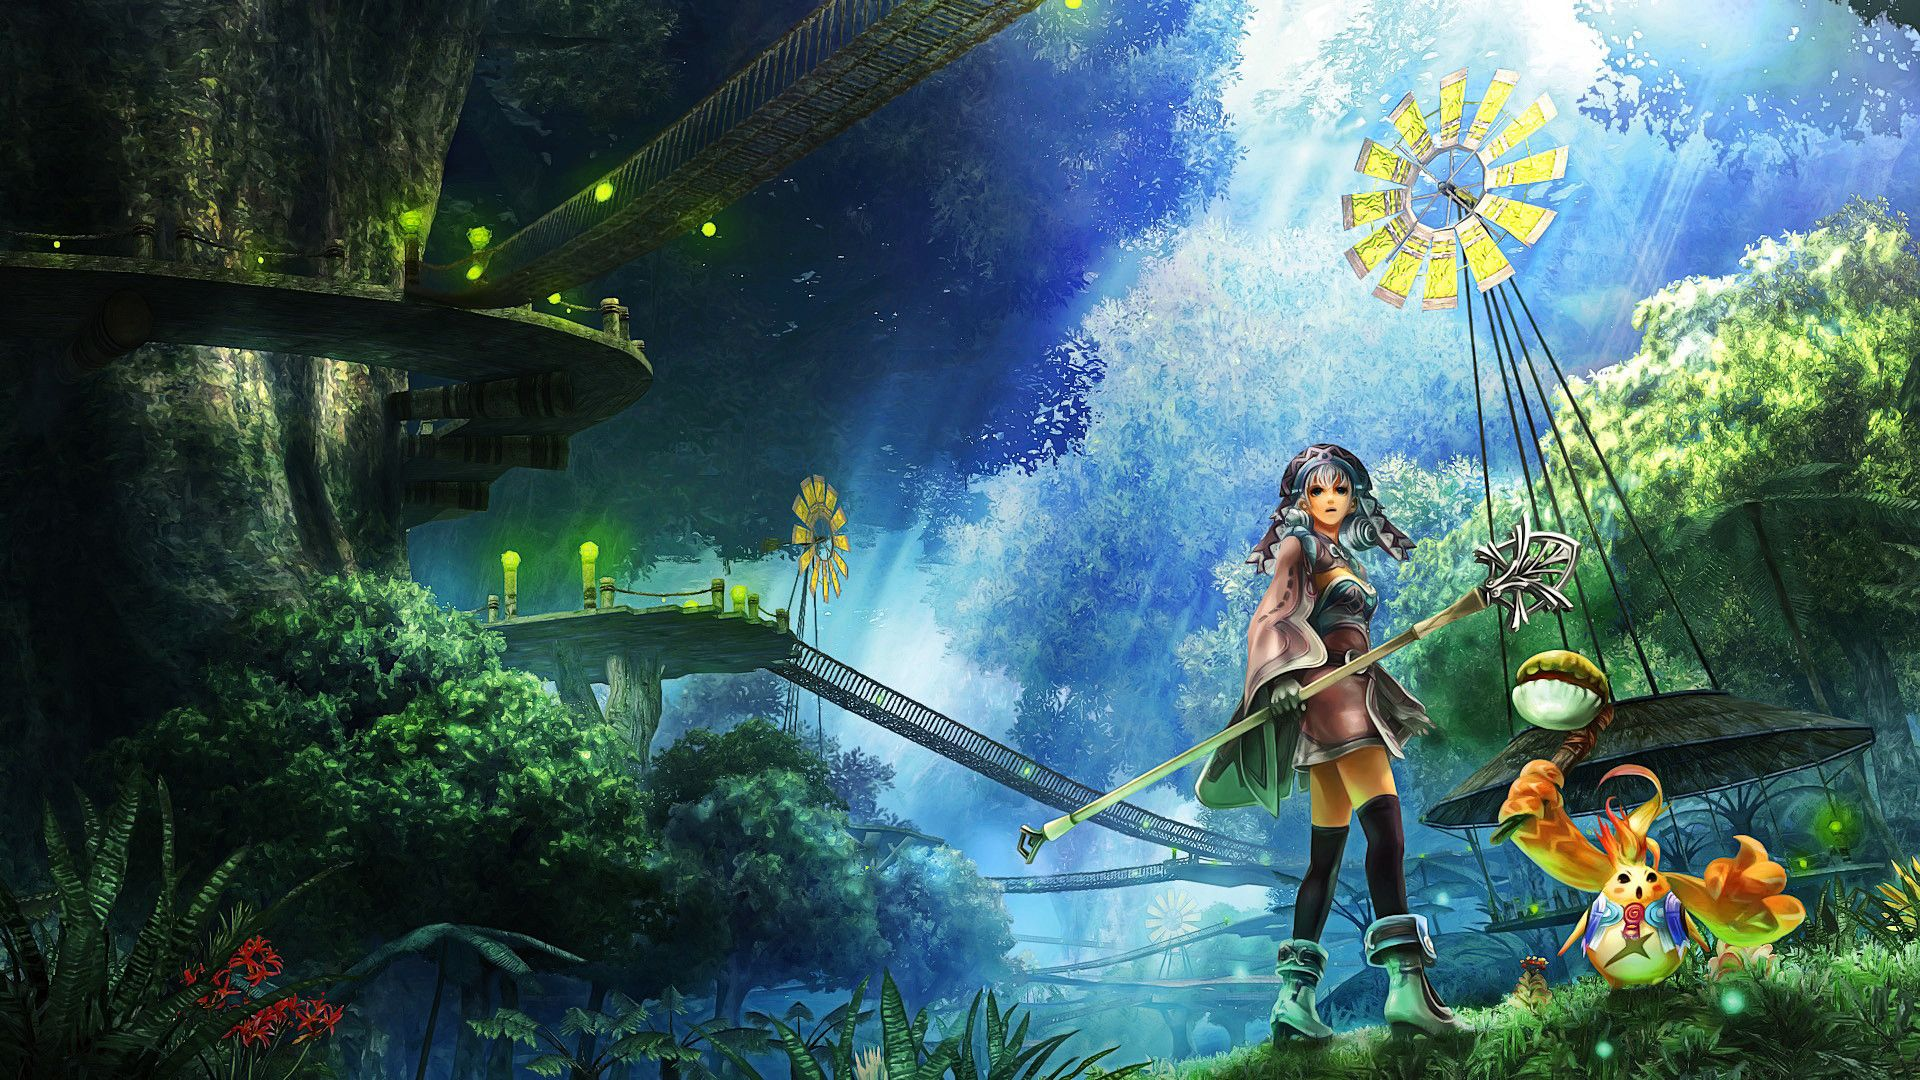 Anime Fantasy Wallpapers Top Free Anime Fantasy Backgrounds Wallpaperaccess